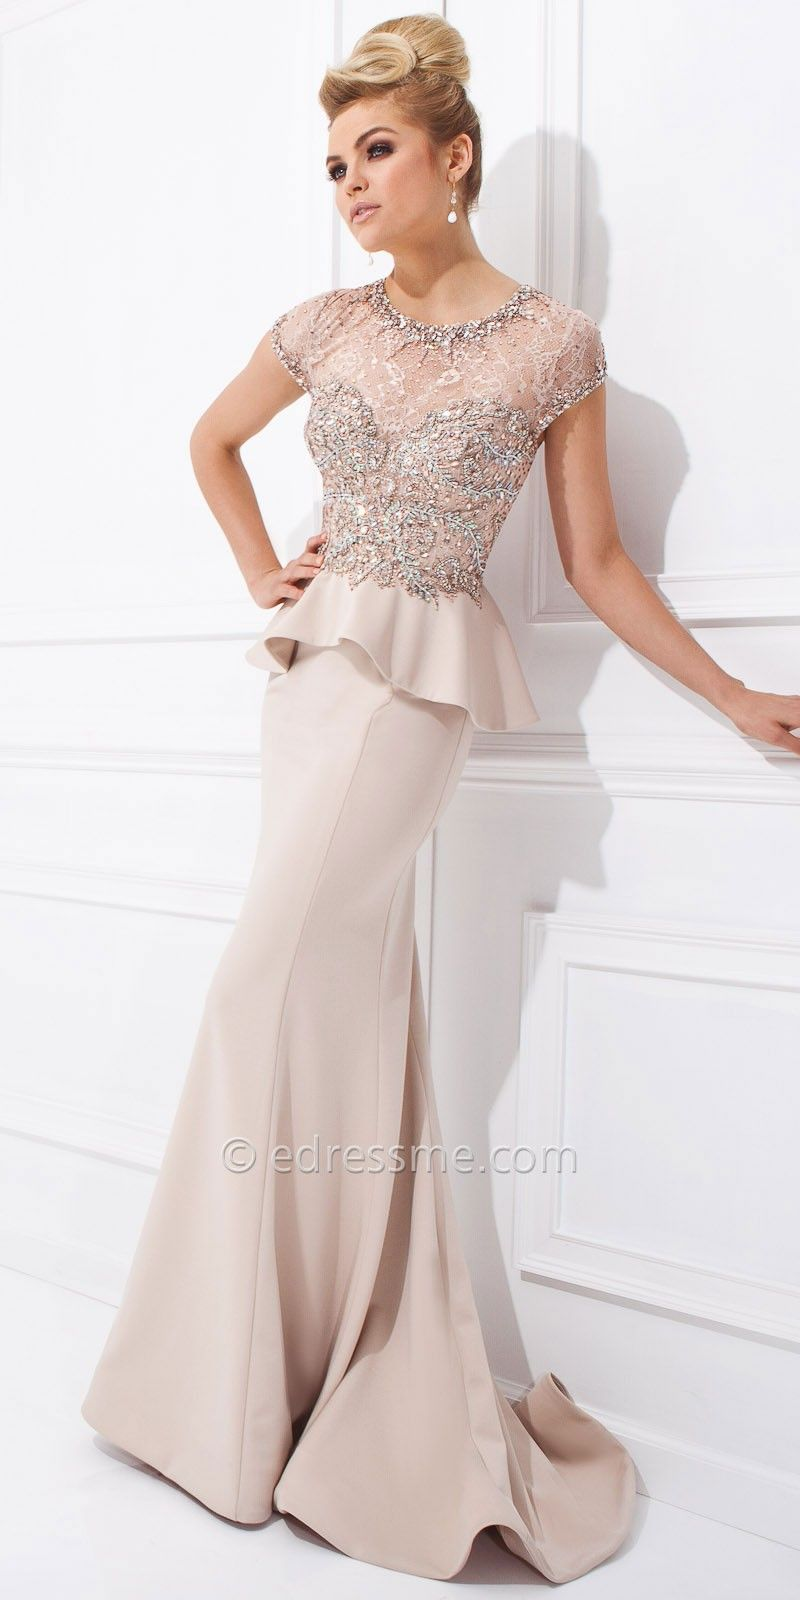 jeweled lace peplum evening dress could be used for bridesmaids but ...